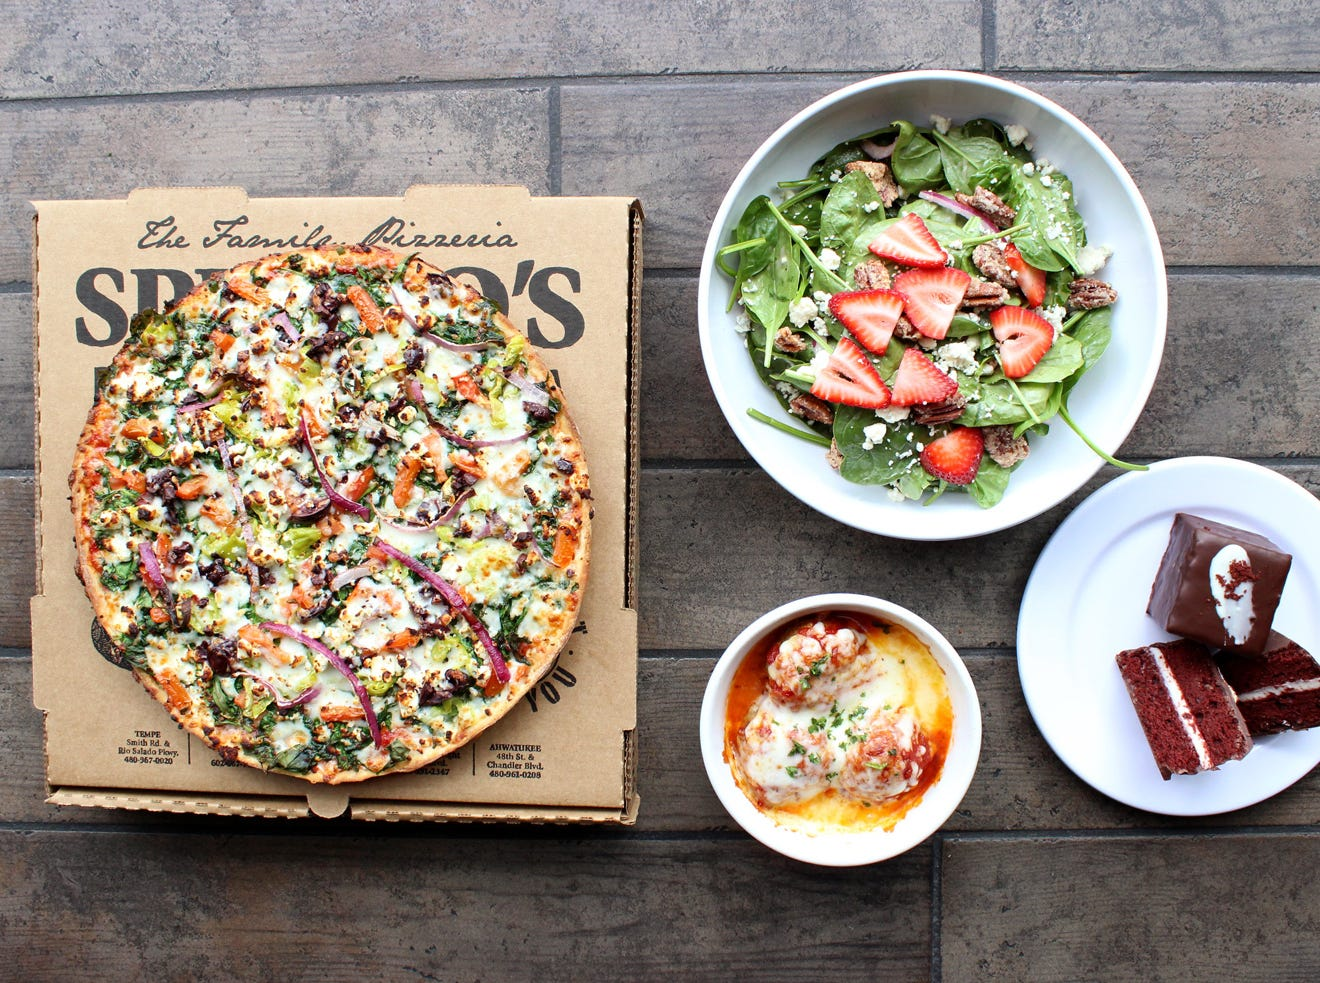 Spinato's Pizzeria | Nov. 11, get a free entree priced up to $15. | Details: 4848 E. Chandler Blvd., Phoenix. 480-961-0208. Also, 11108 N. Frank Lloyd Wright Blvd., Scottsdale. 480-391-2347. Other locations at spinatospizzeria.com.